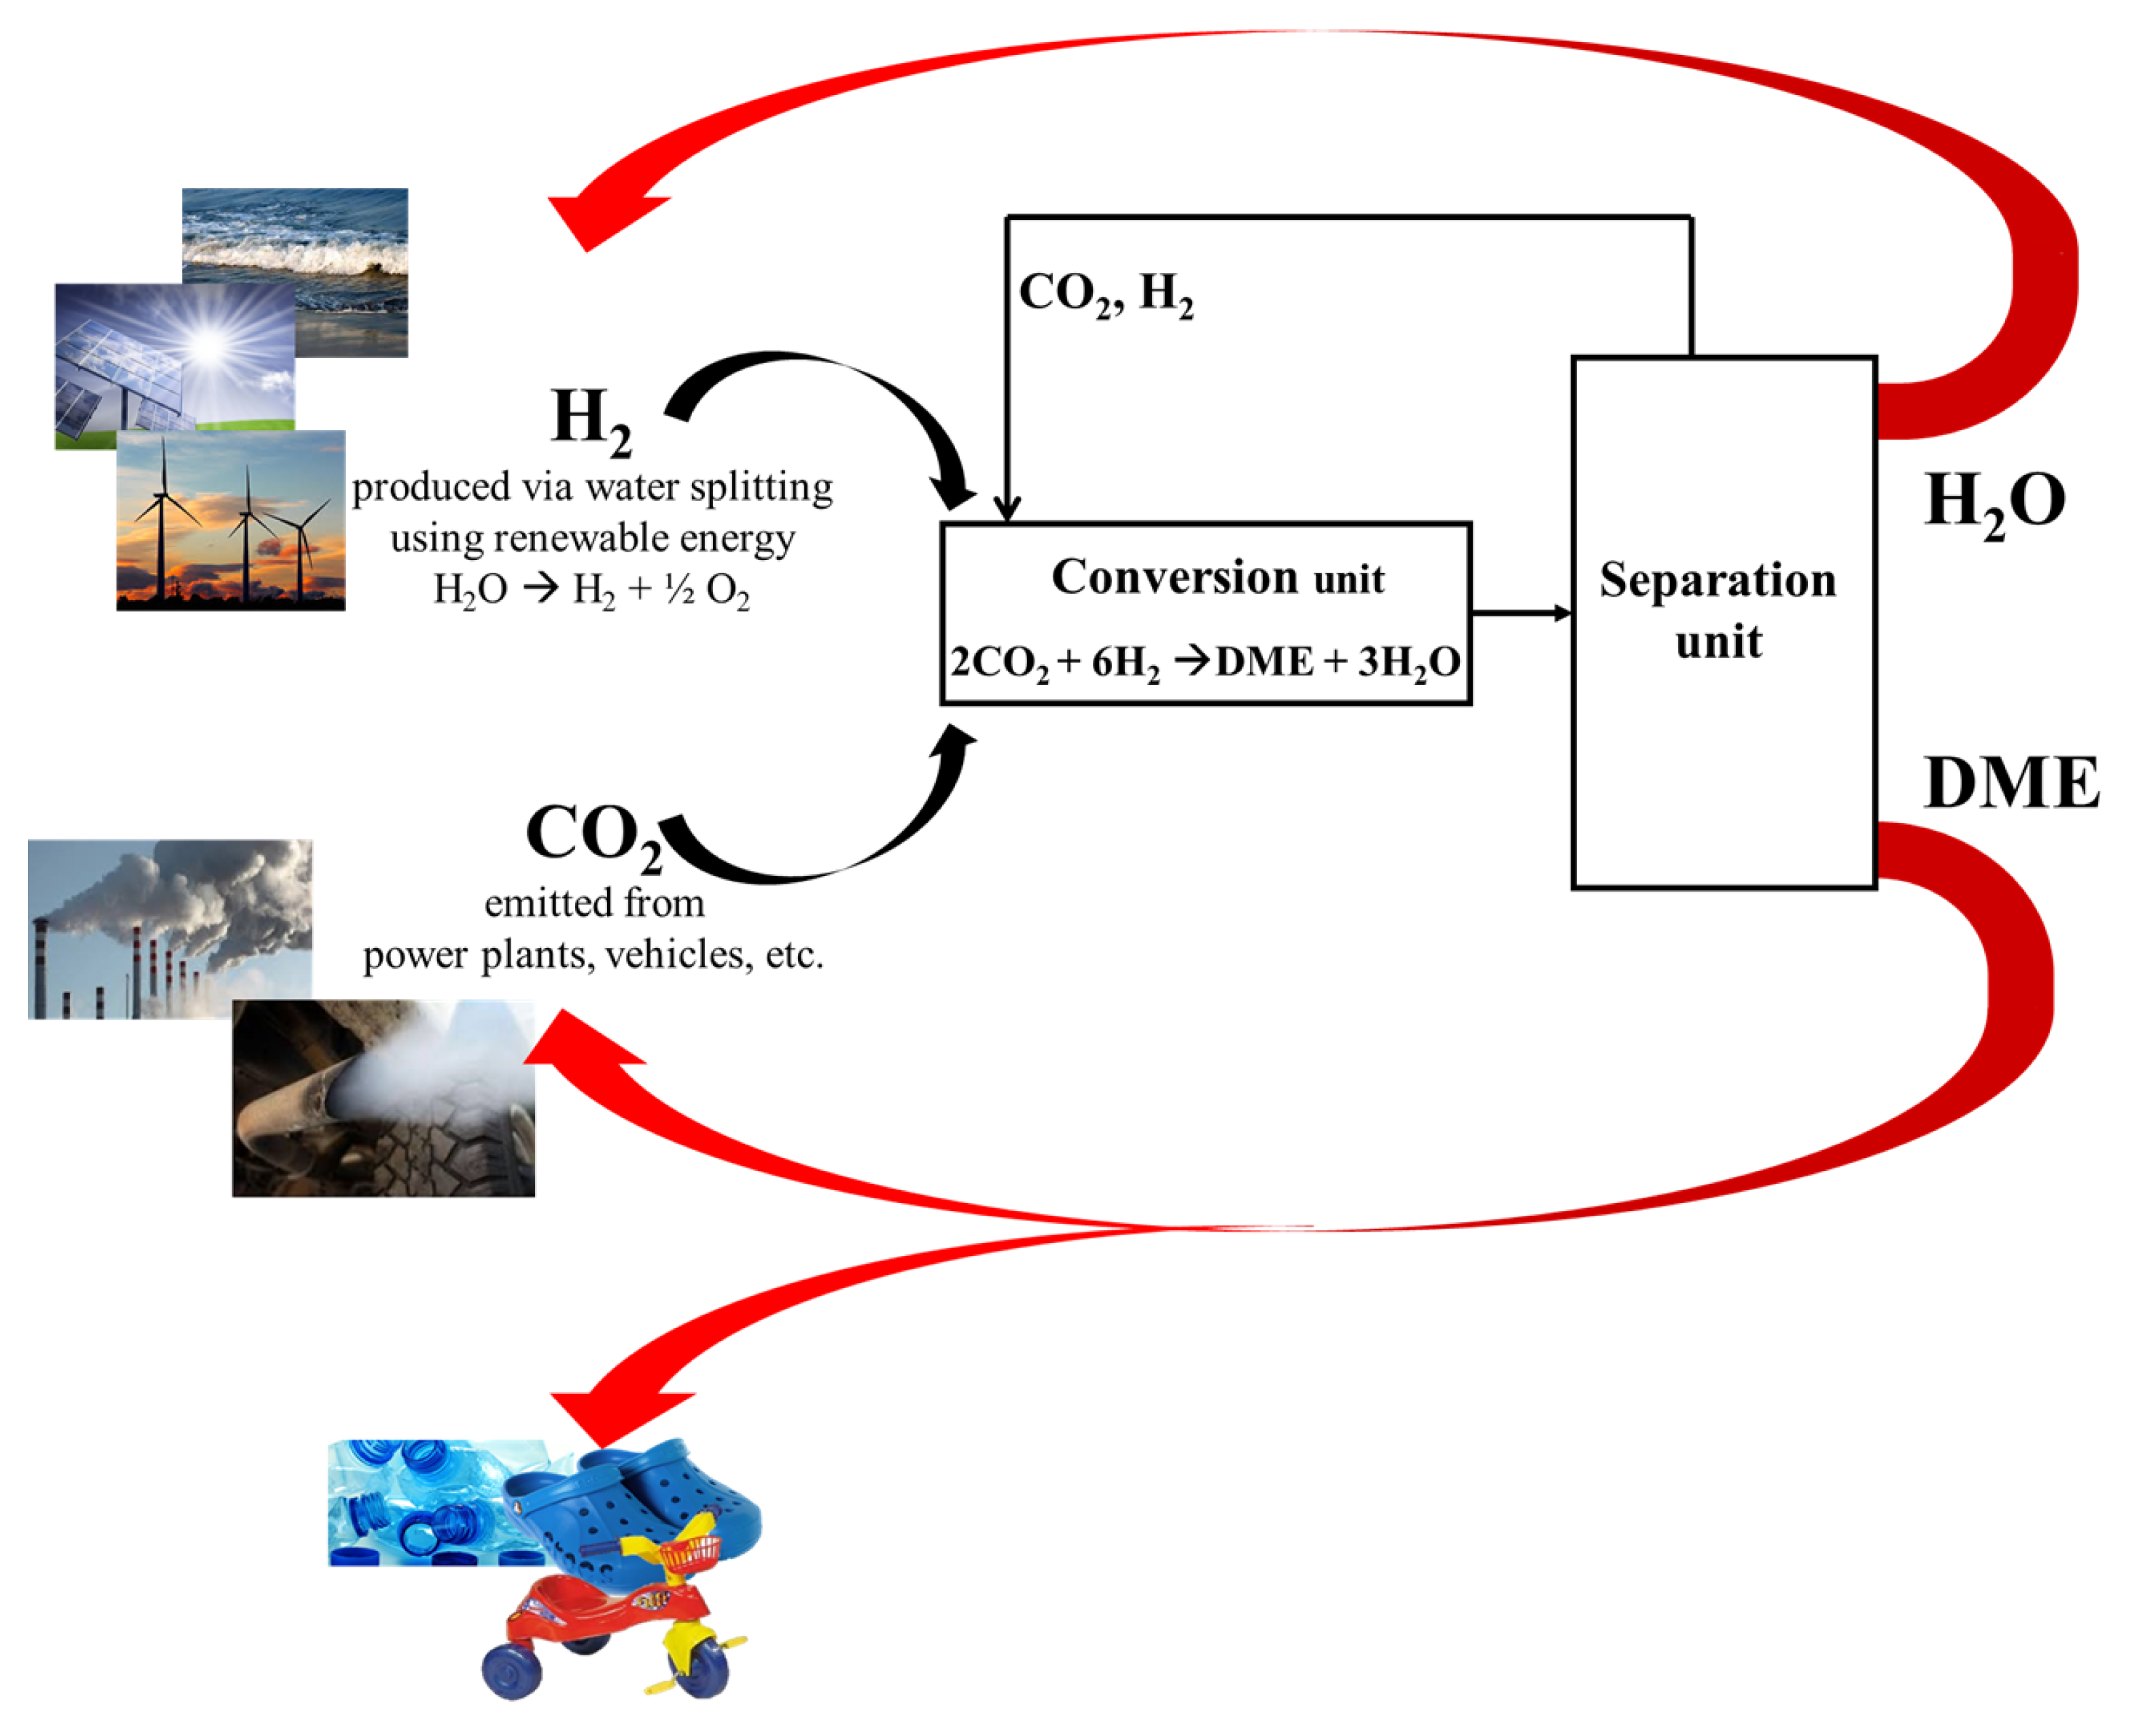 Molecules Free Full Text Co2 Recycling To Dimethyl Ether State Navistar Ht 570 Engine Diagram 23 00031 G001